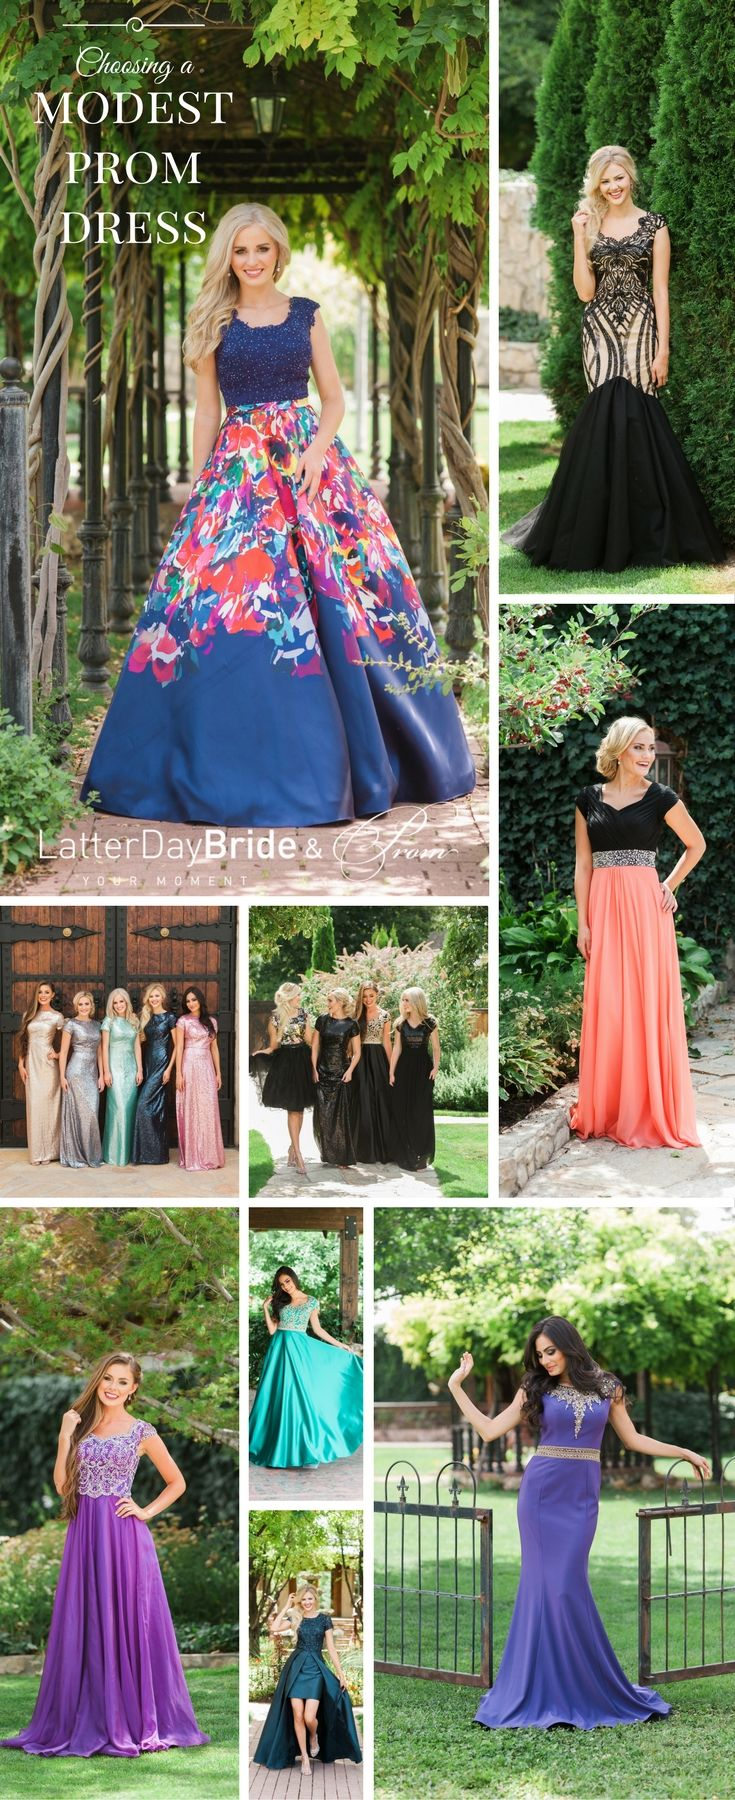 Choosing a Modest Prom Dress | LatterDayBride & Prom | Mormon Prom | LDS | Modesty | Formal gowns with sleeves | Worldwide Shipping | Sparkly Prom Dress | Elegant | Salt Lake City | Utah